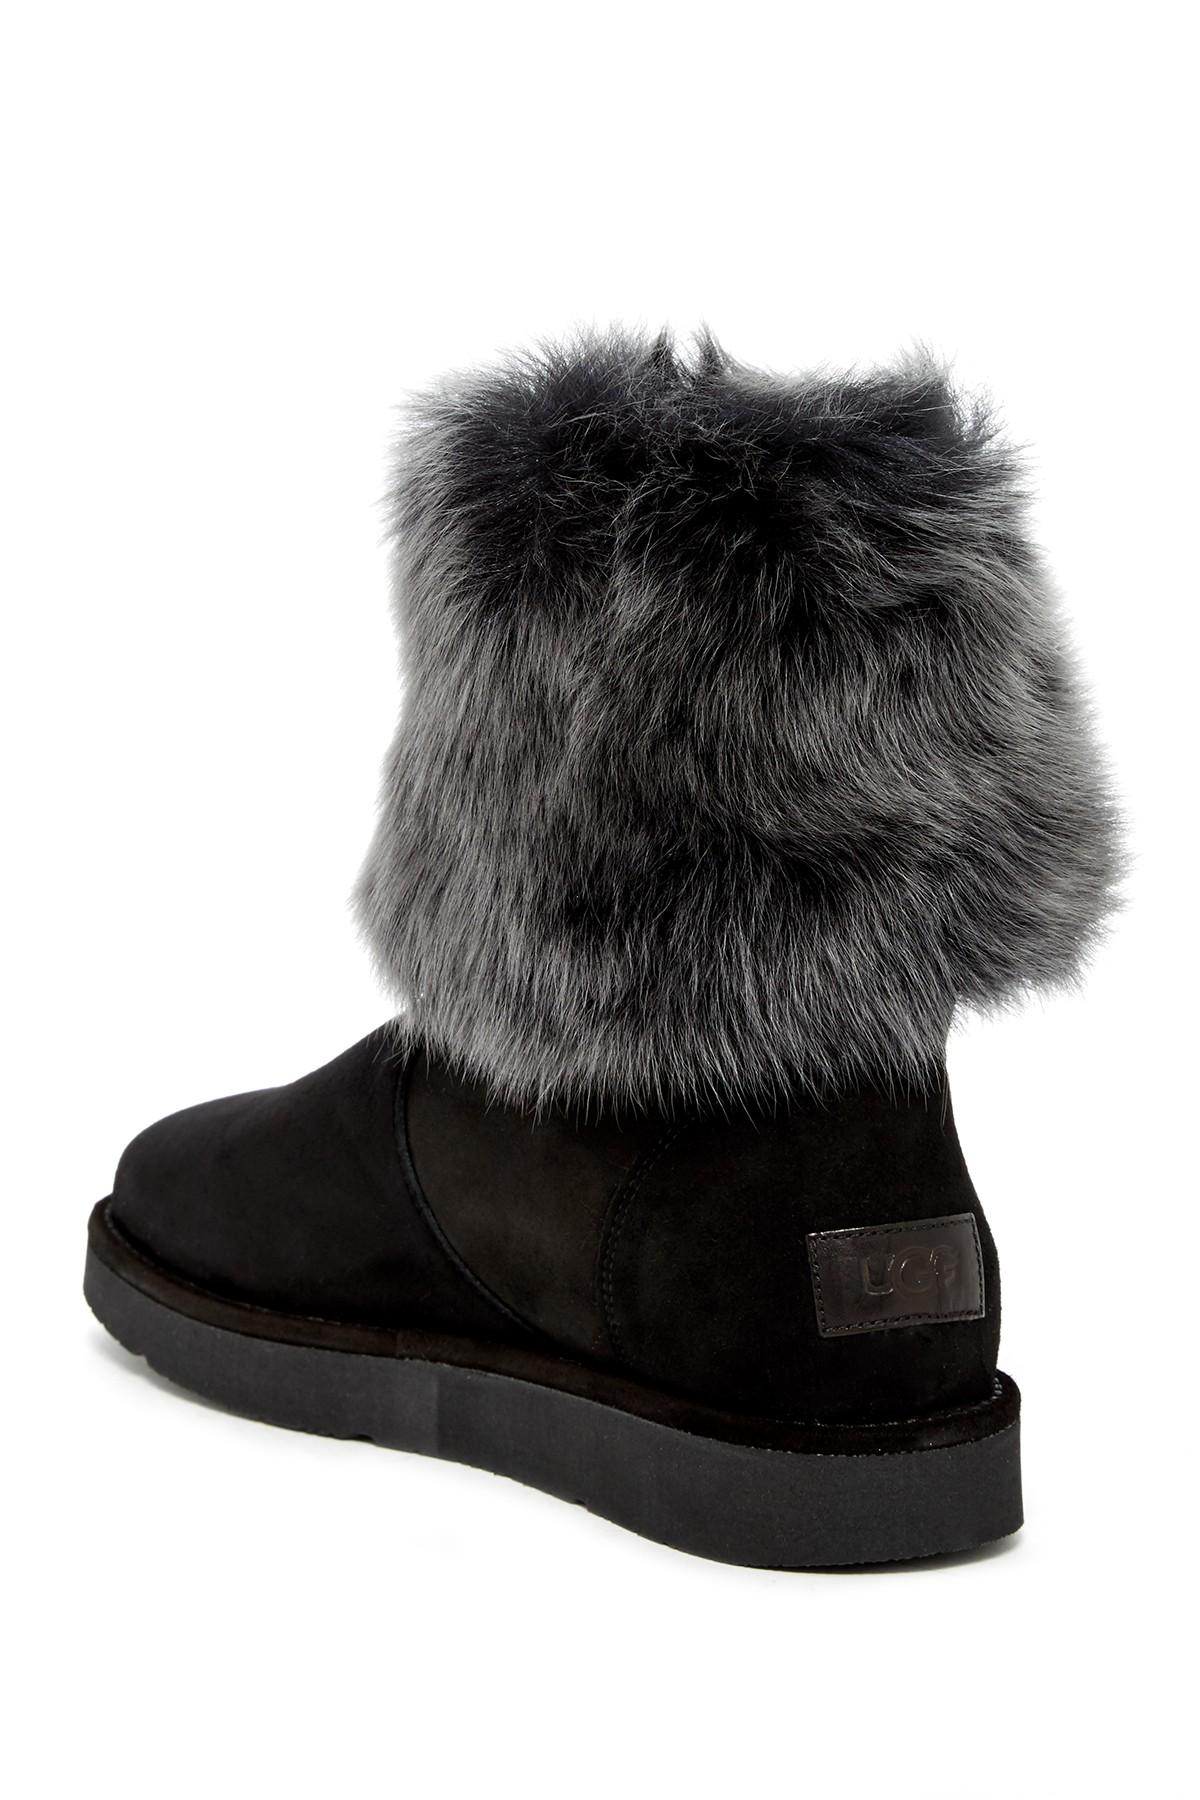 Womens Boots UGG Collection Lora Black